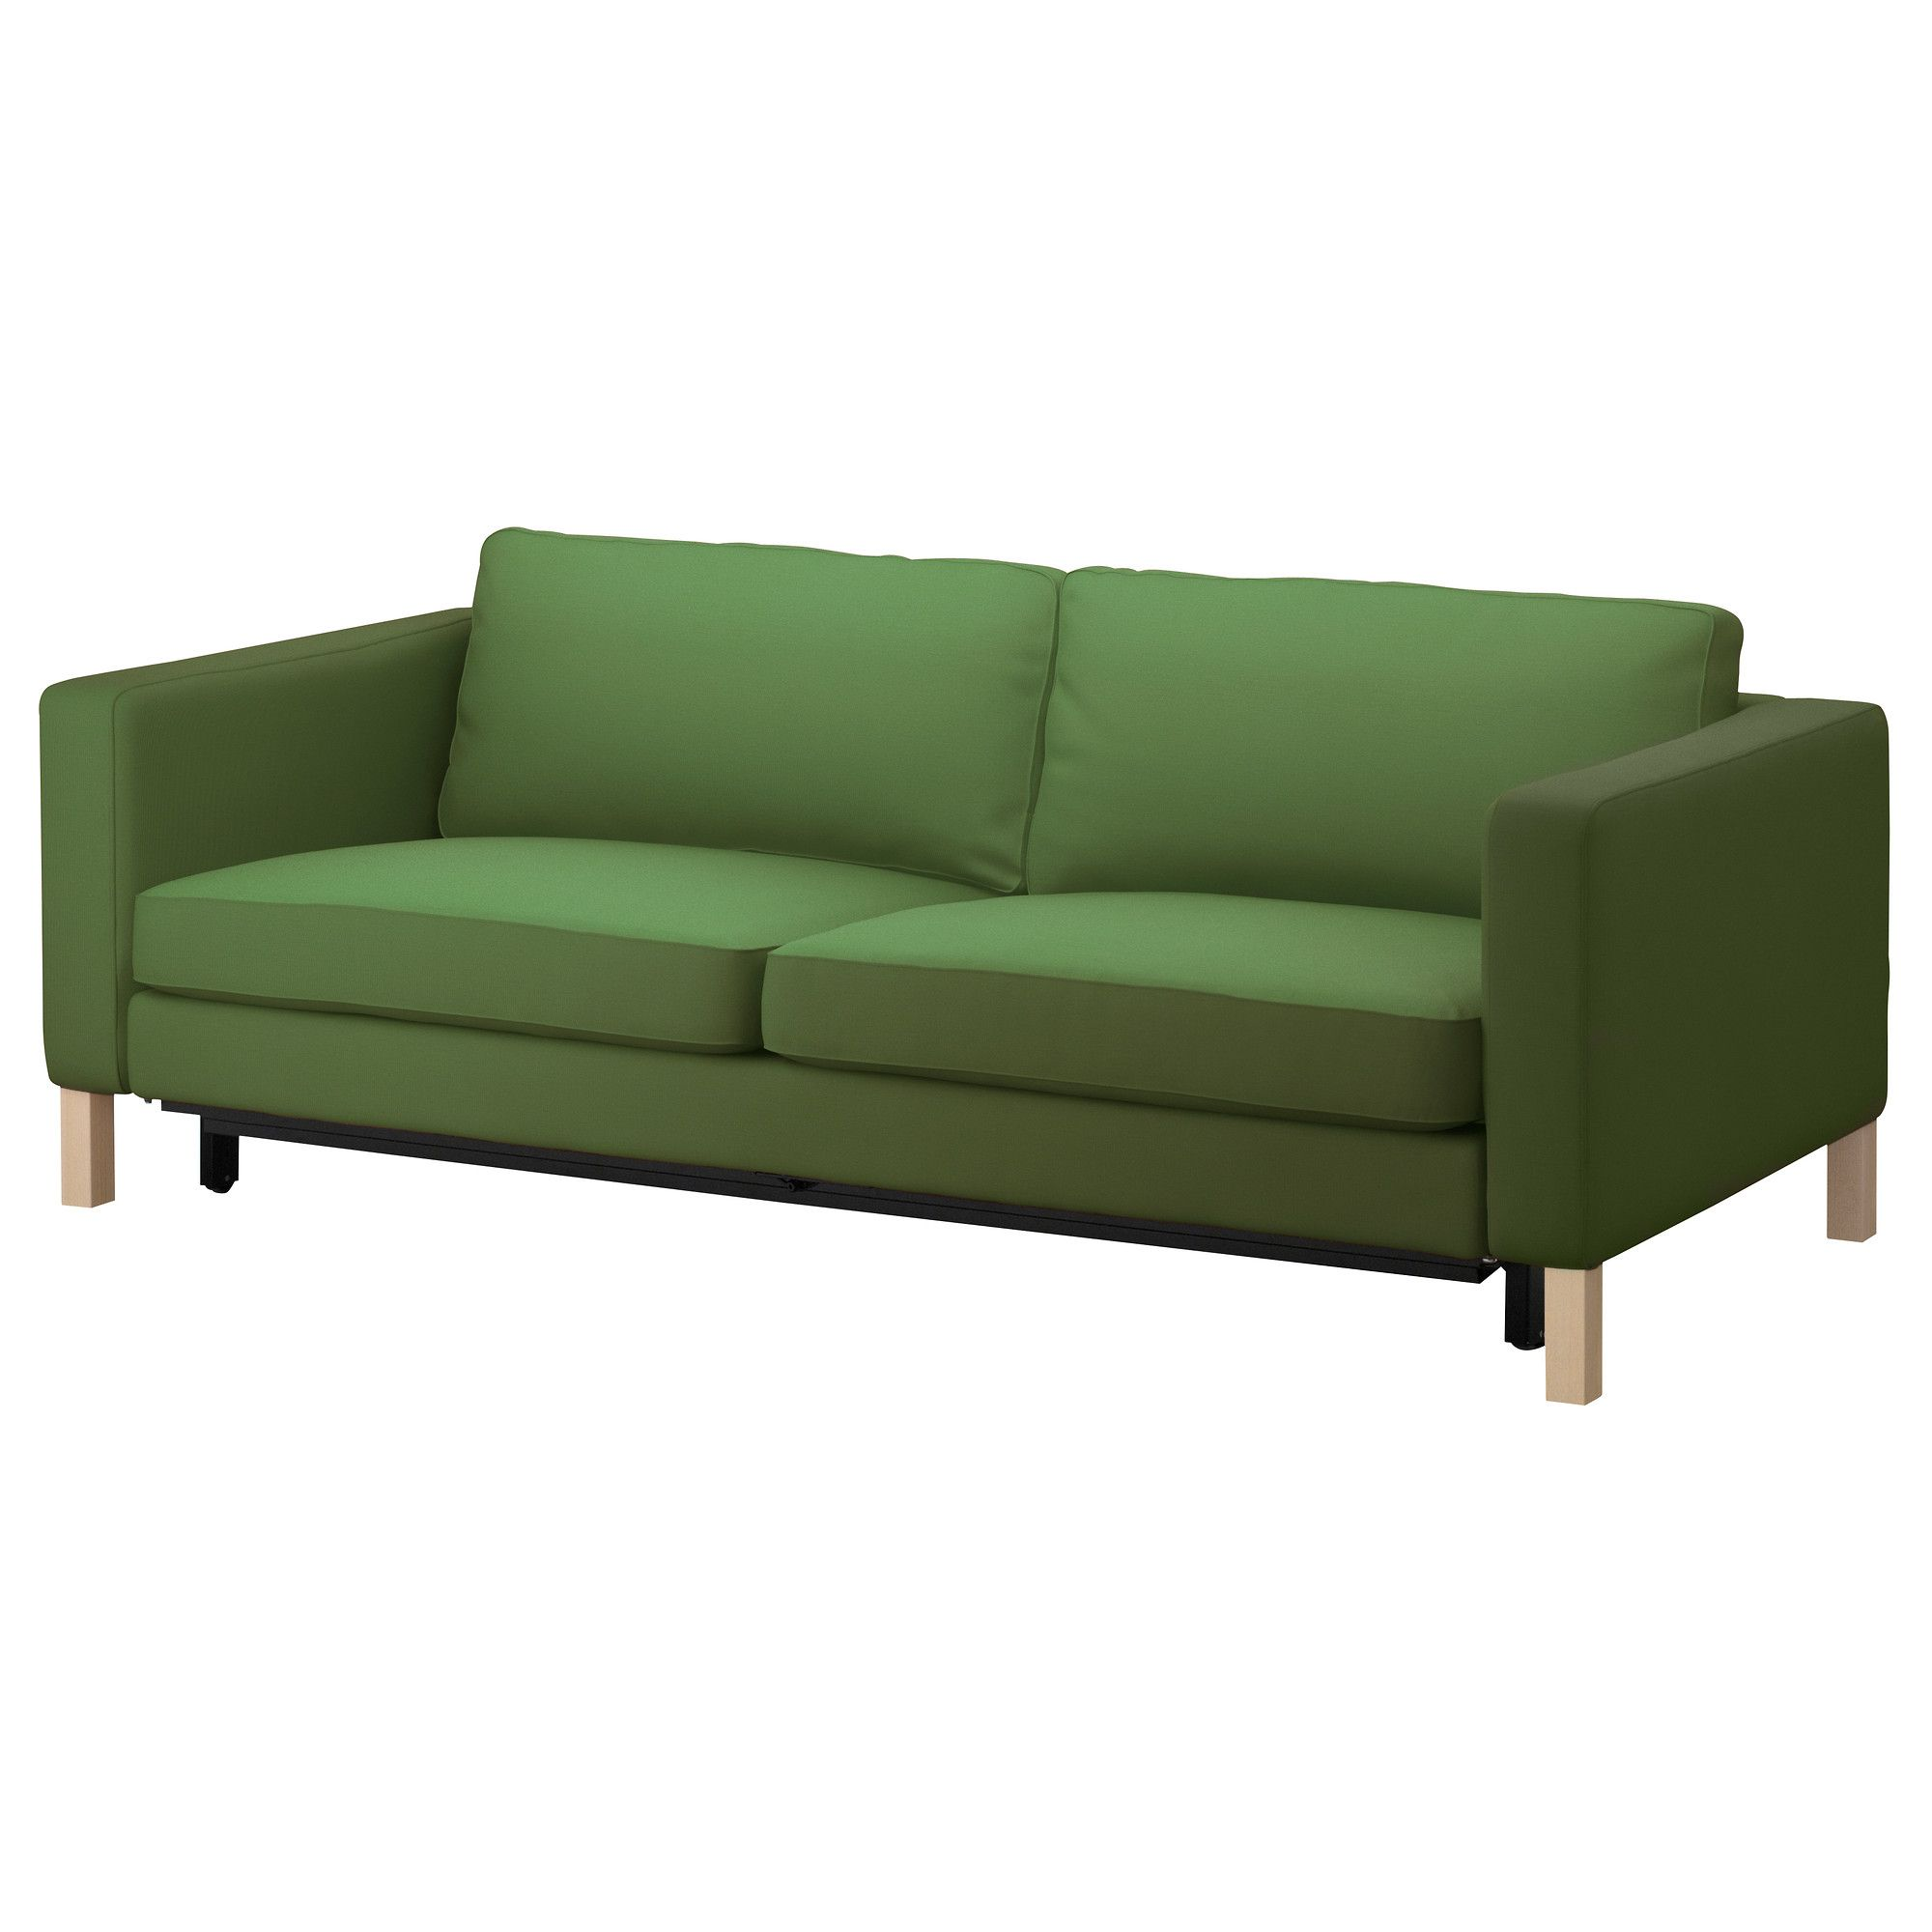 Superb Us Furniture And Home Furnishings Sofa Bed Green Pink Gmtry Best Dining Table And Chair Ideas Images Gmtryco